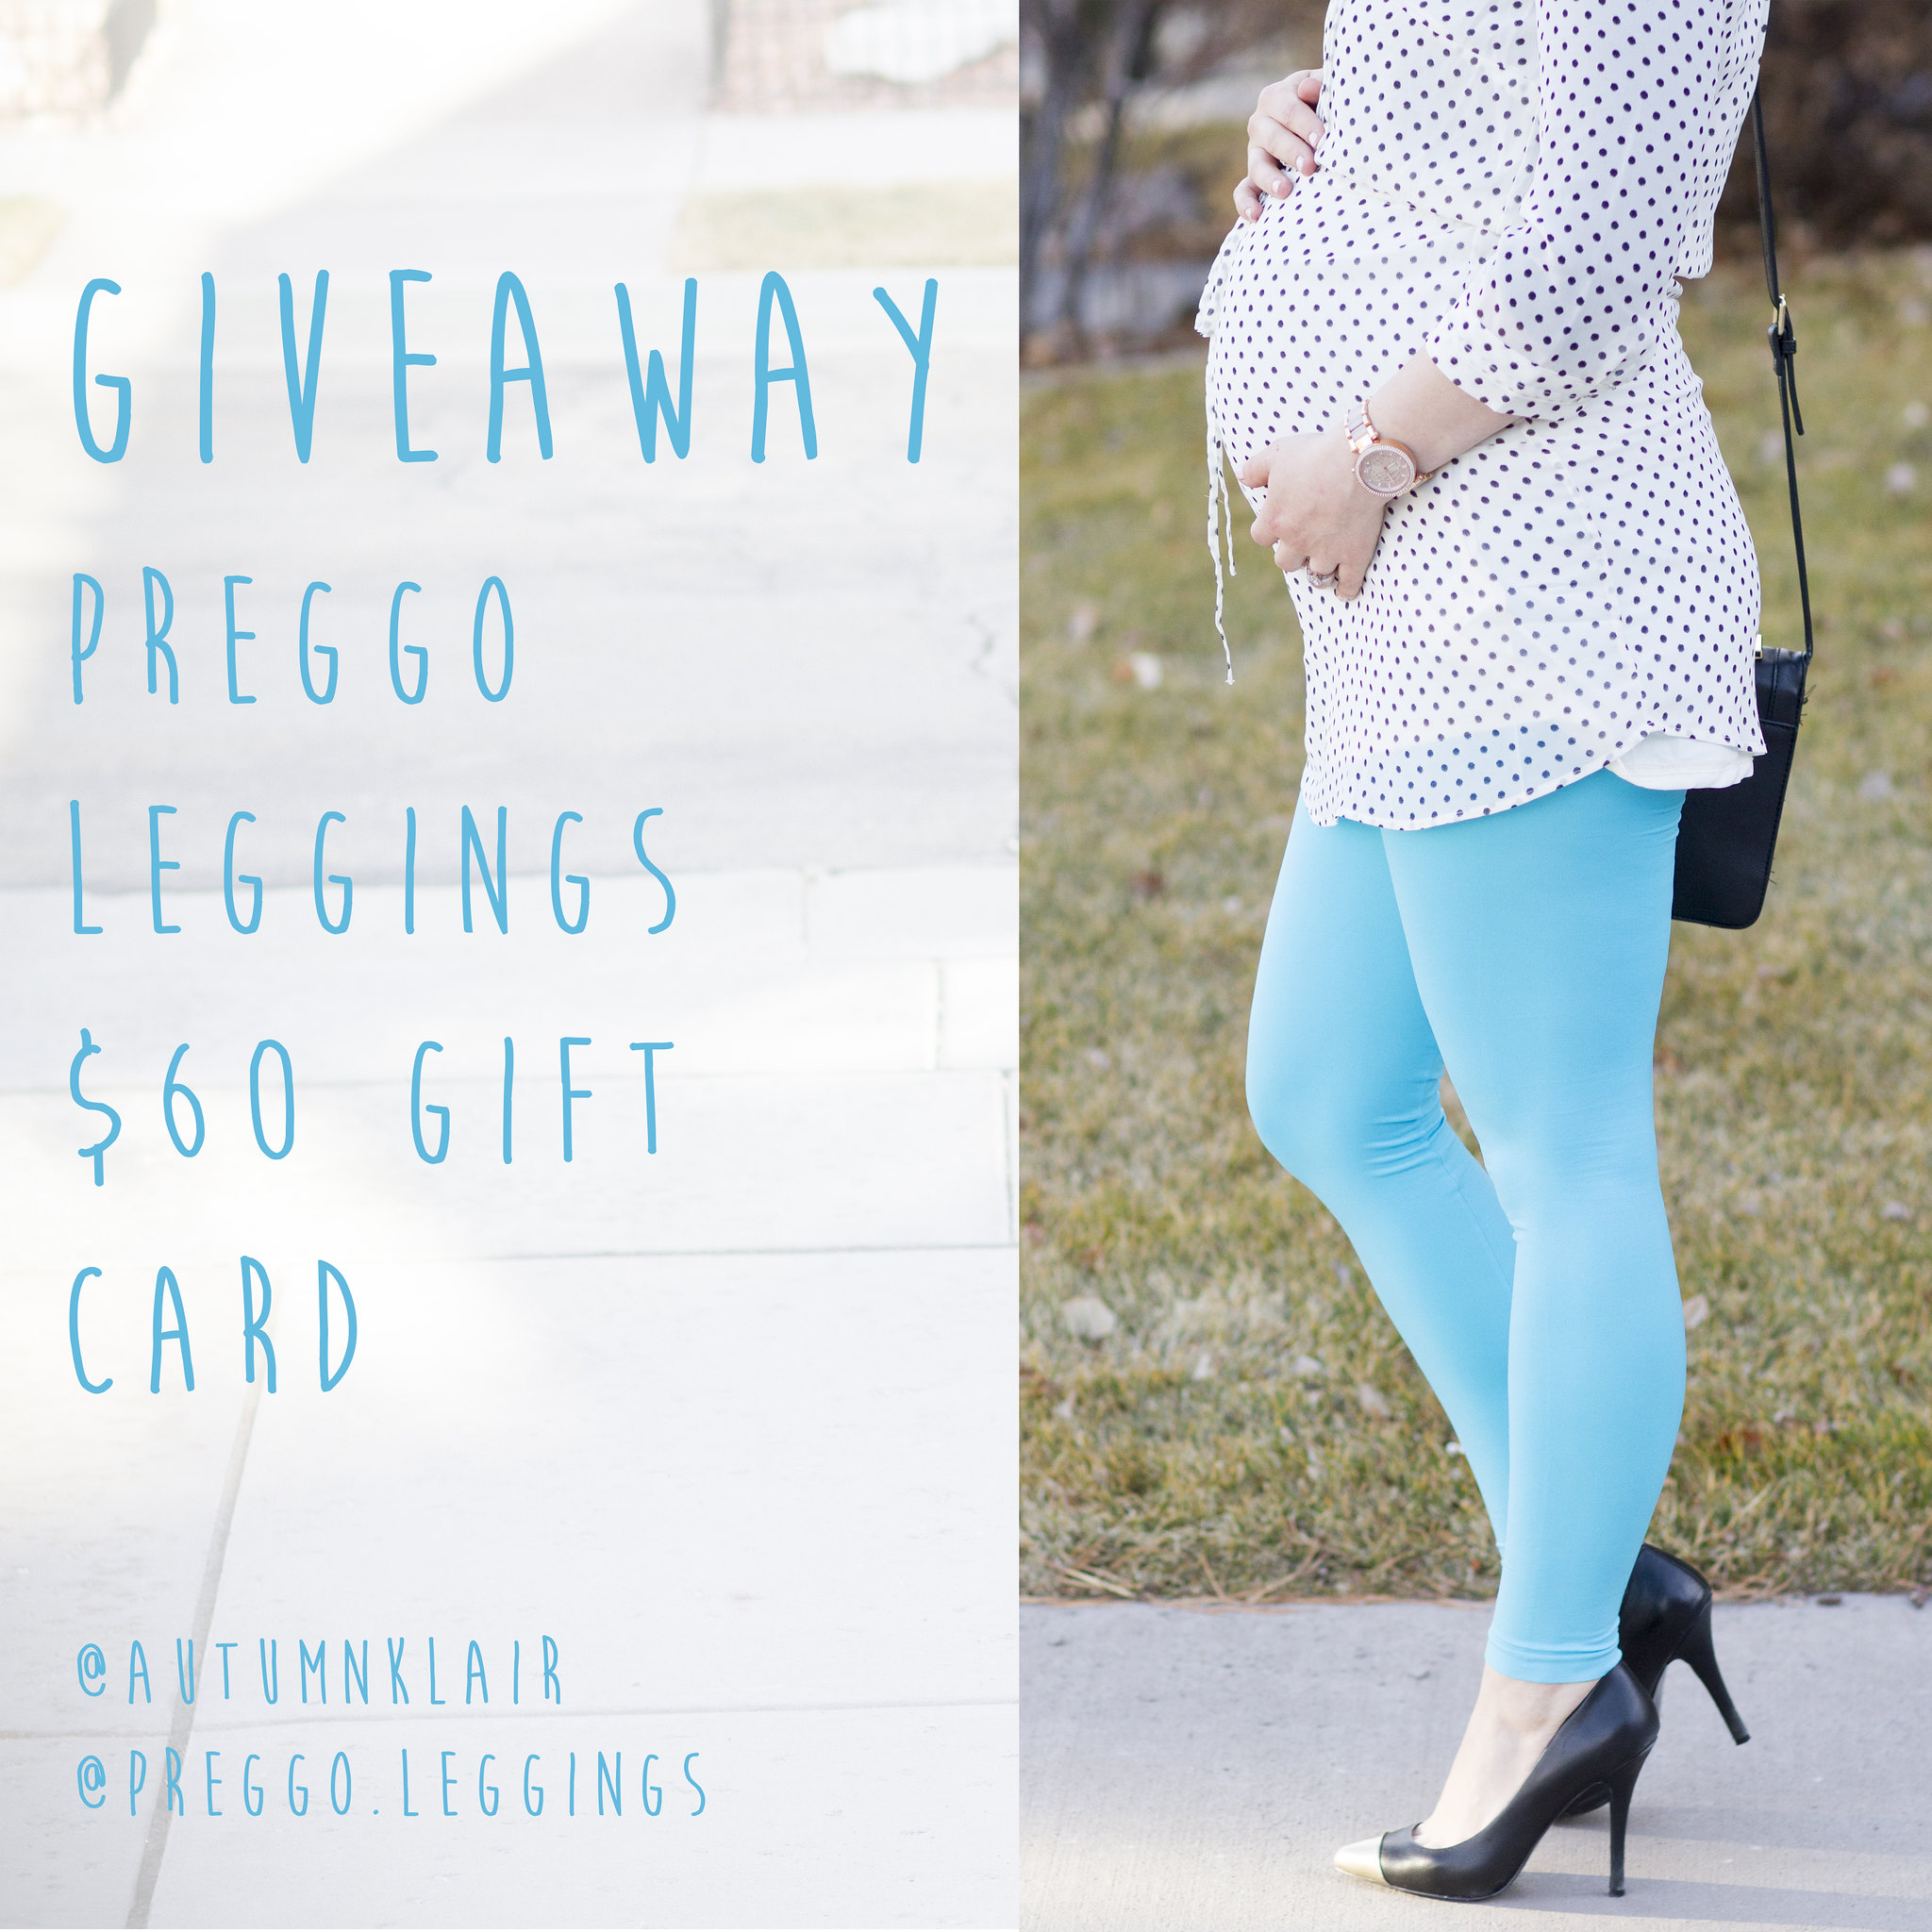 PREGGOLEGGINGS final